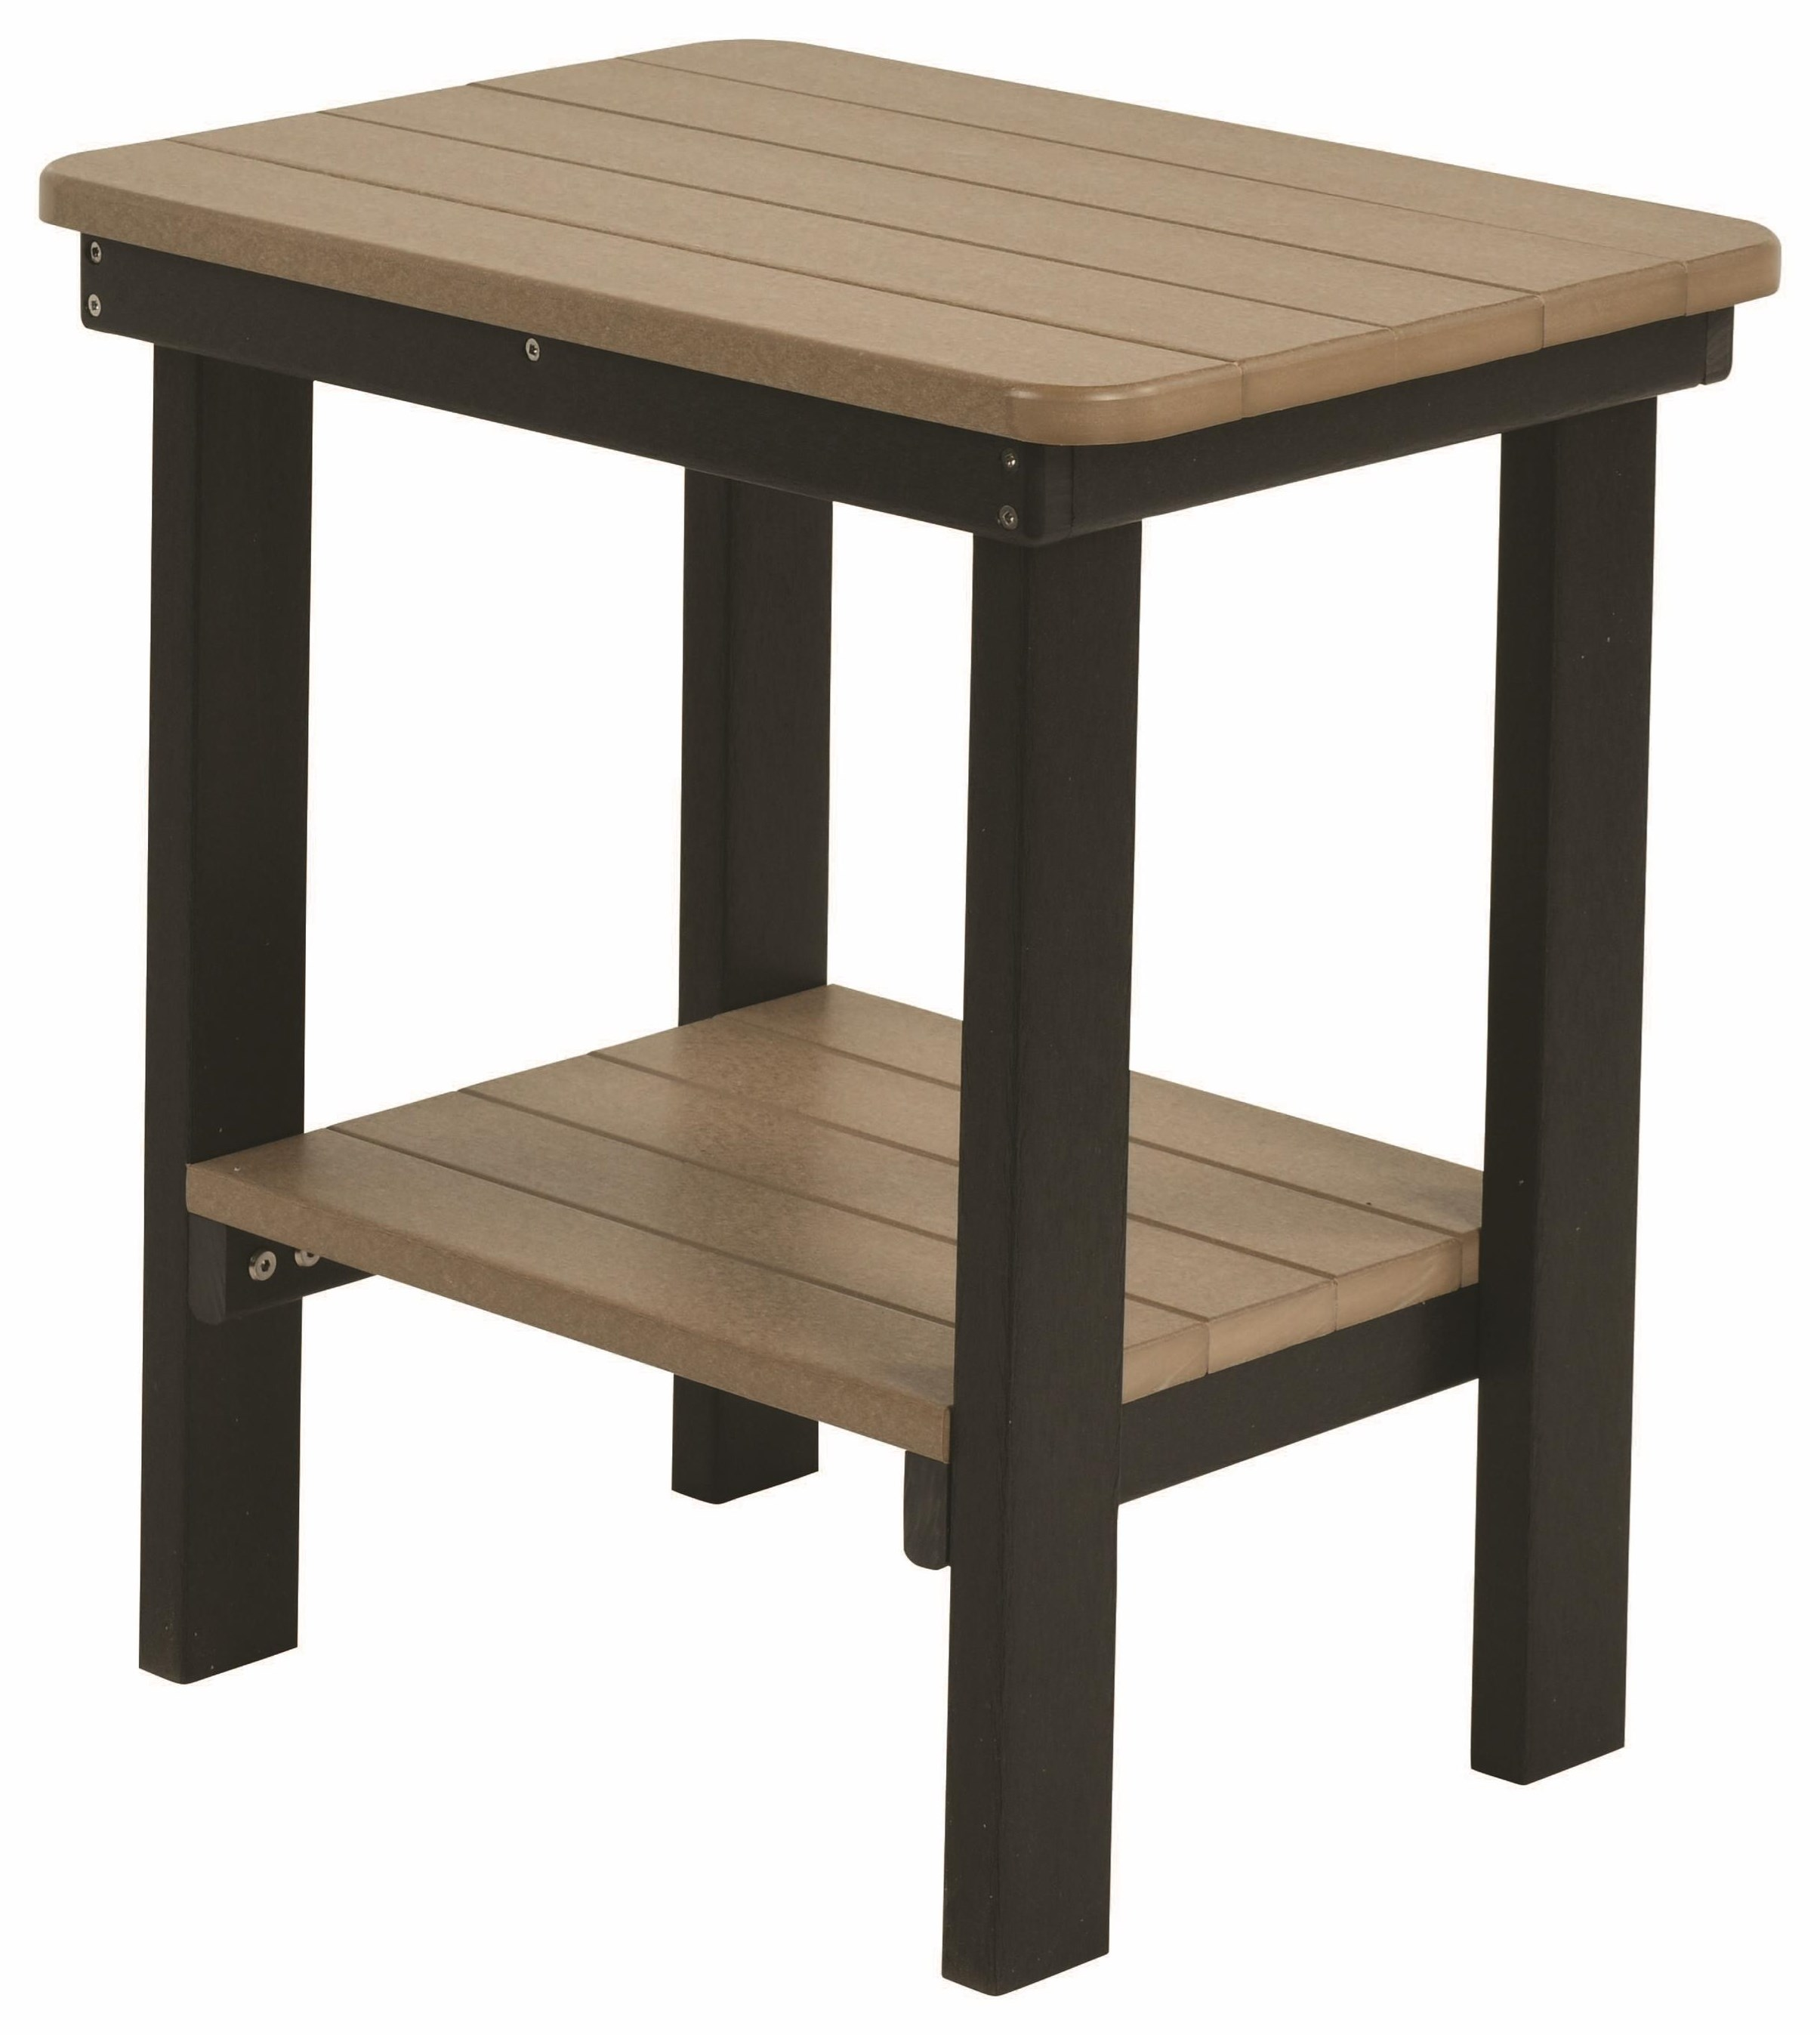 Accessories Rectangular End Table by Berlin Gardens at Westrich Furniture & Appliances